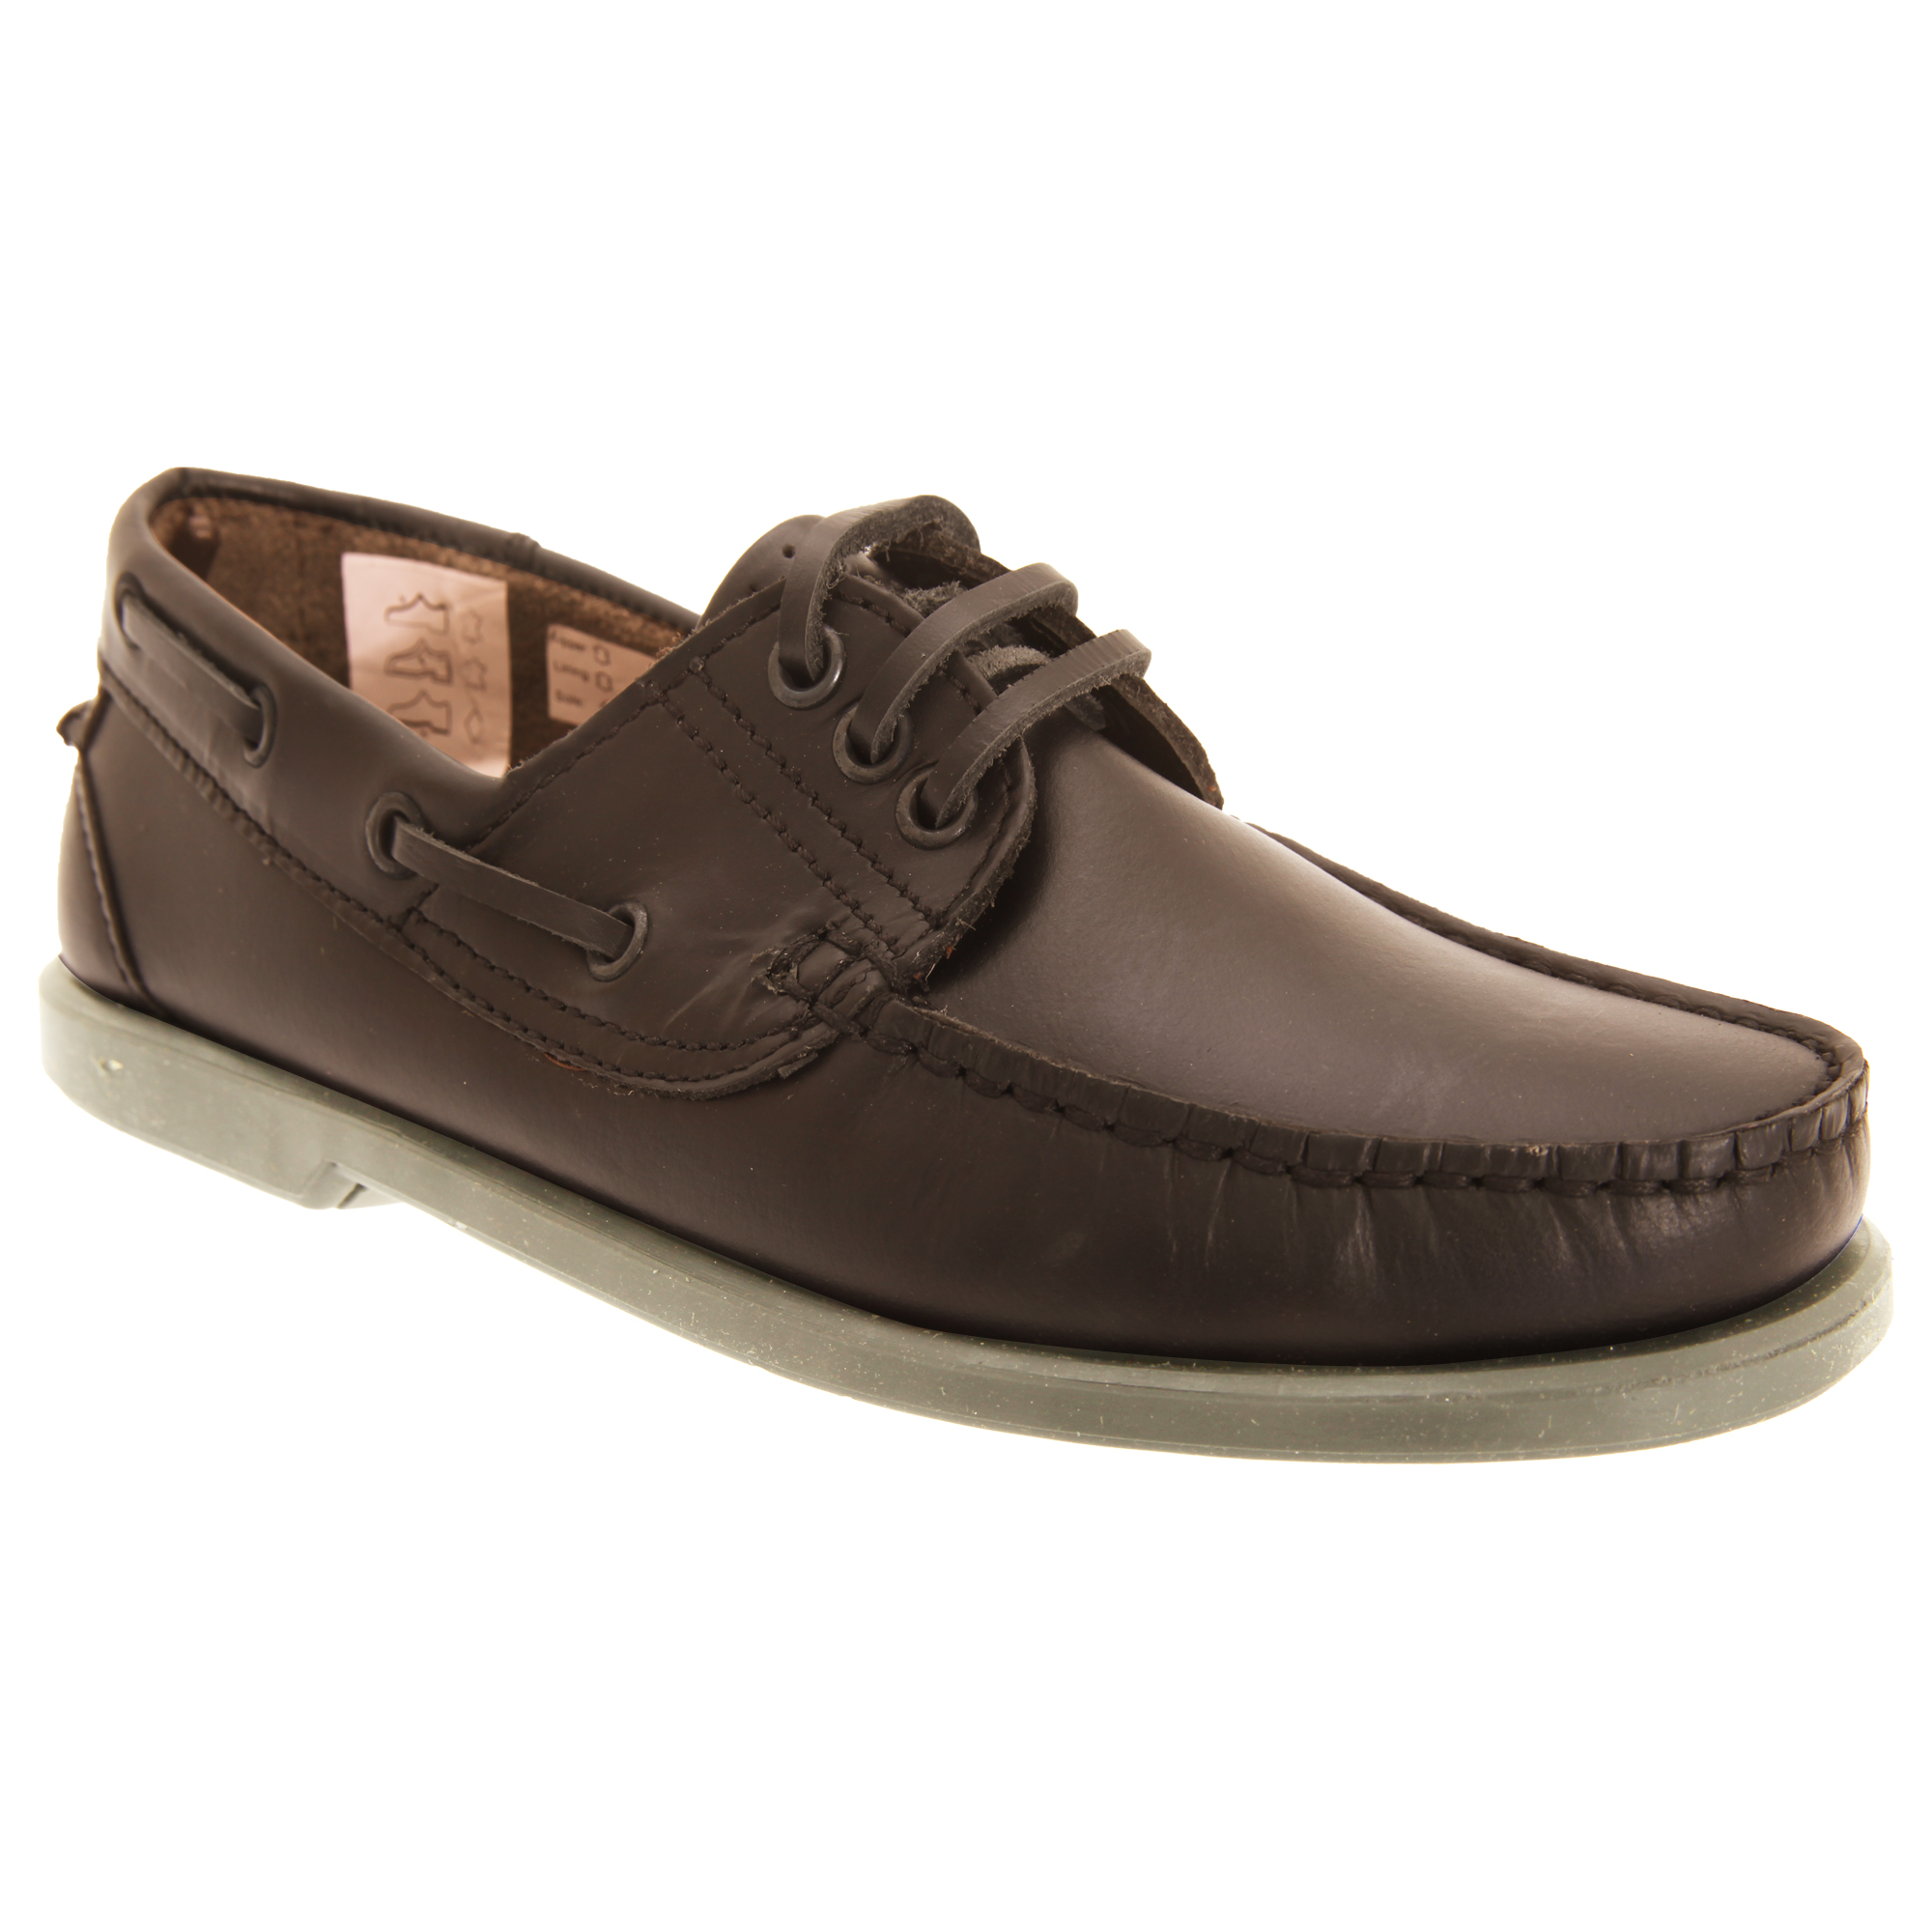 Mens Leather Slip On Boat Shoes